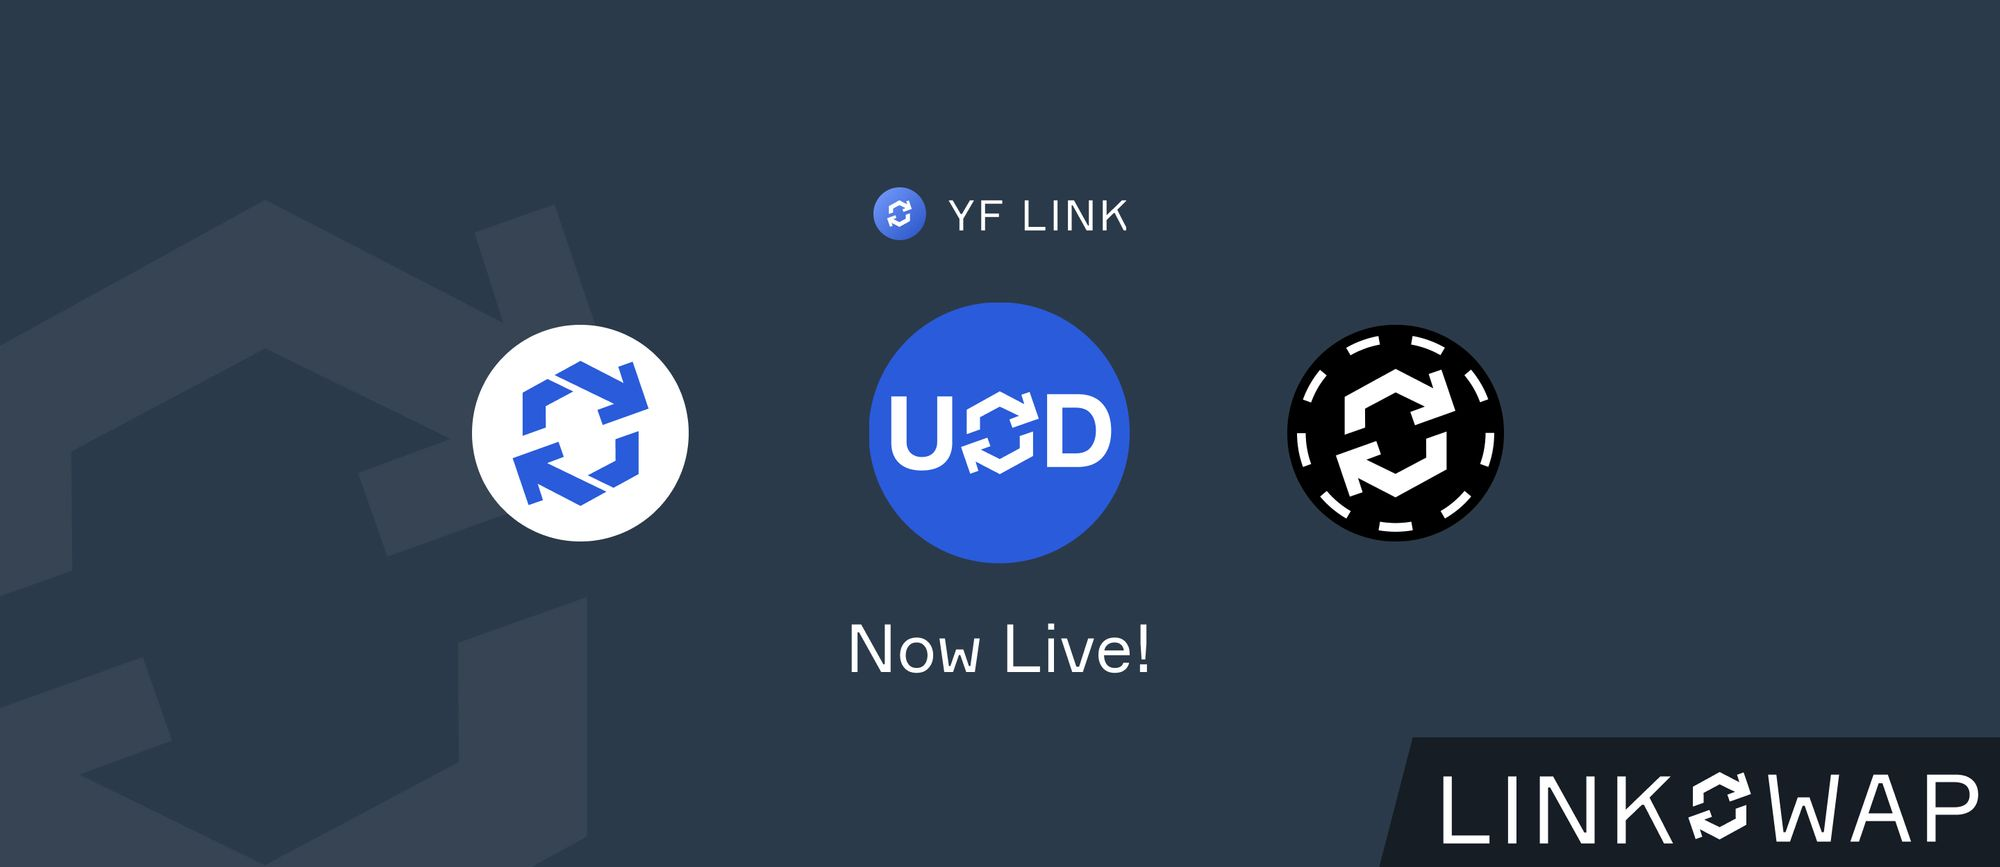 YFLUSD v 1.0 Product Release - Now Live!